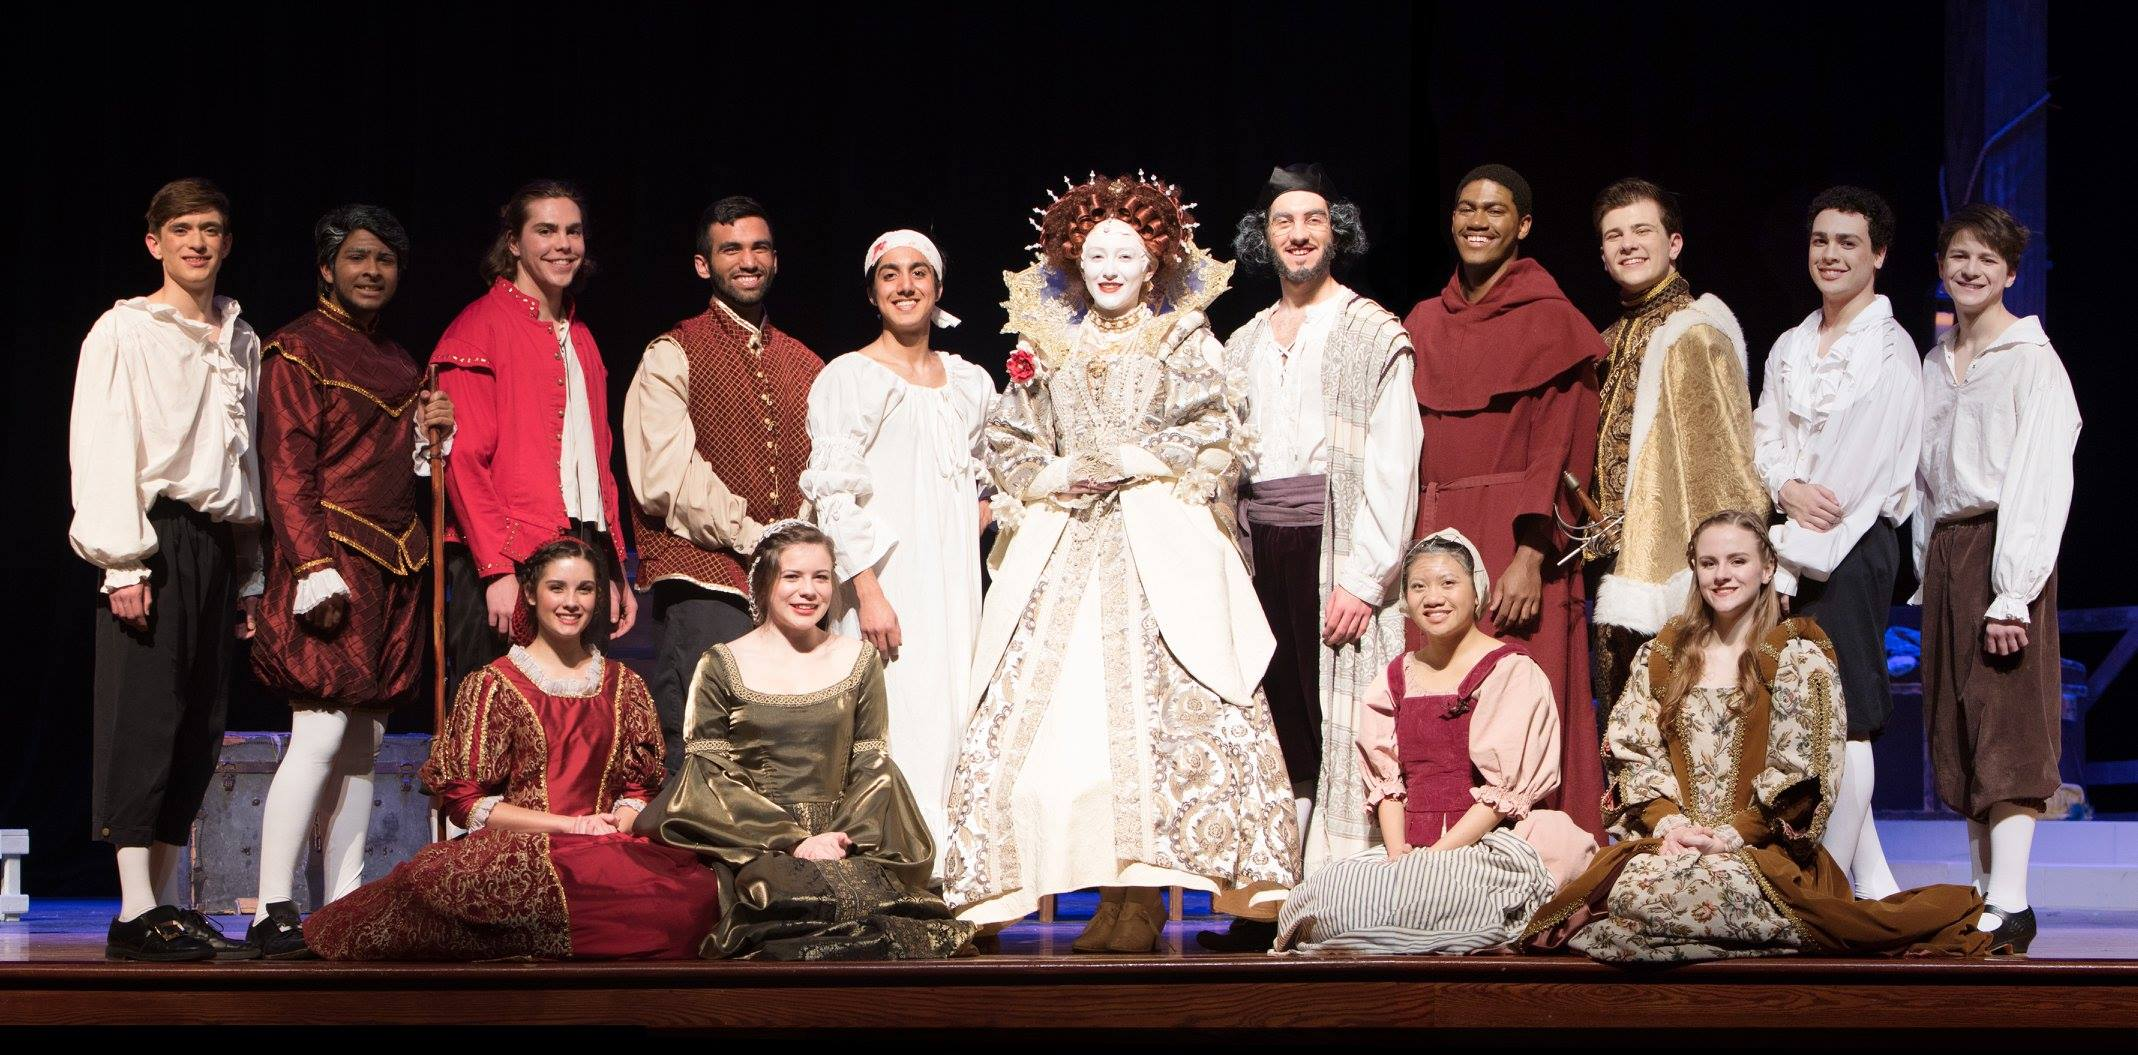 The cast of Elizabeth Rex. From left to right first row: Caleb Geddie, Rayan Moosa, Bailey Ray, Mihir Lulay, AJ Abdullah, Brooke Loye, Sean Ghedi, Ryan Hamilton, Joseph Hoffman, Spencer Kahn, and Dalton Currey. Second row: Sami Droste, Caitlin Kresta, Gabbie David, and Amanda Bonds.